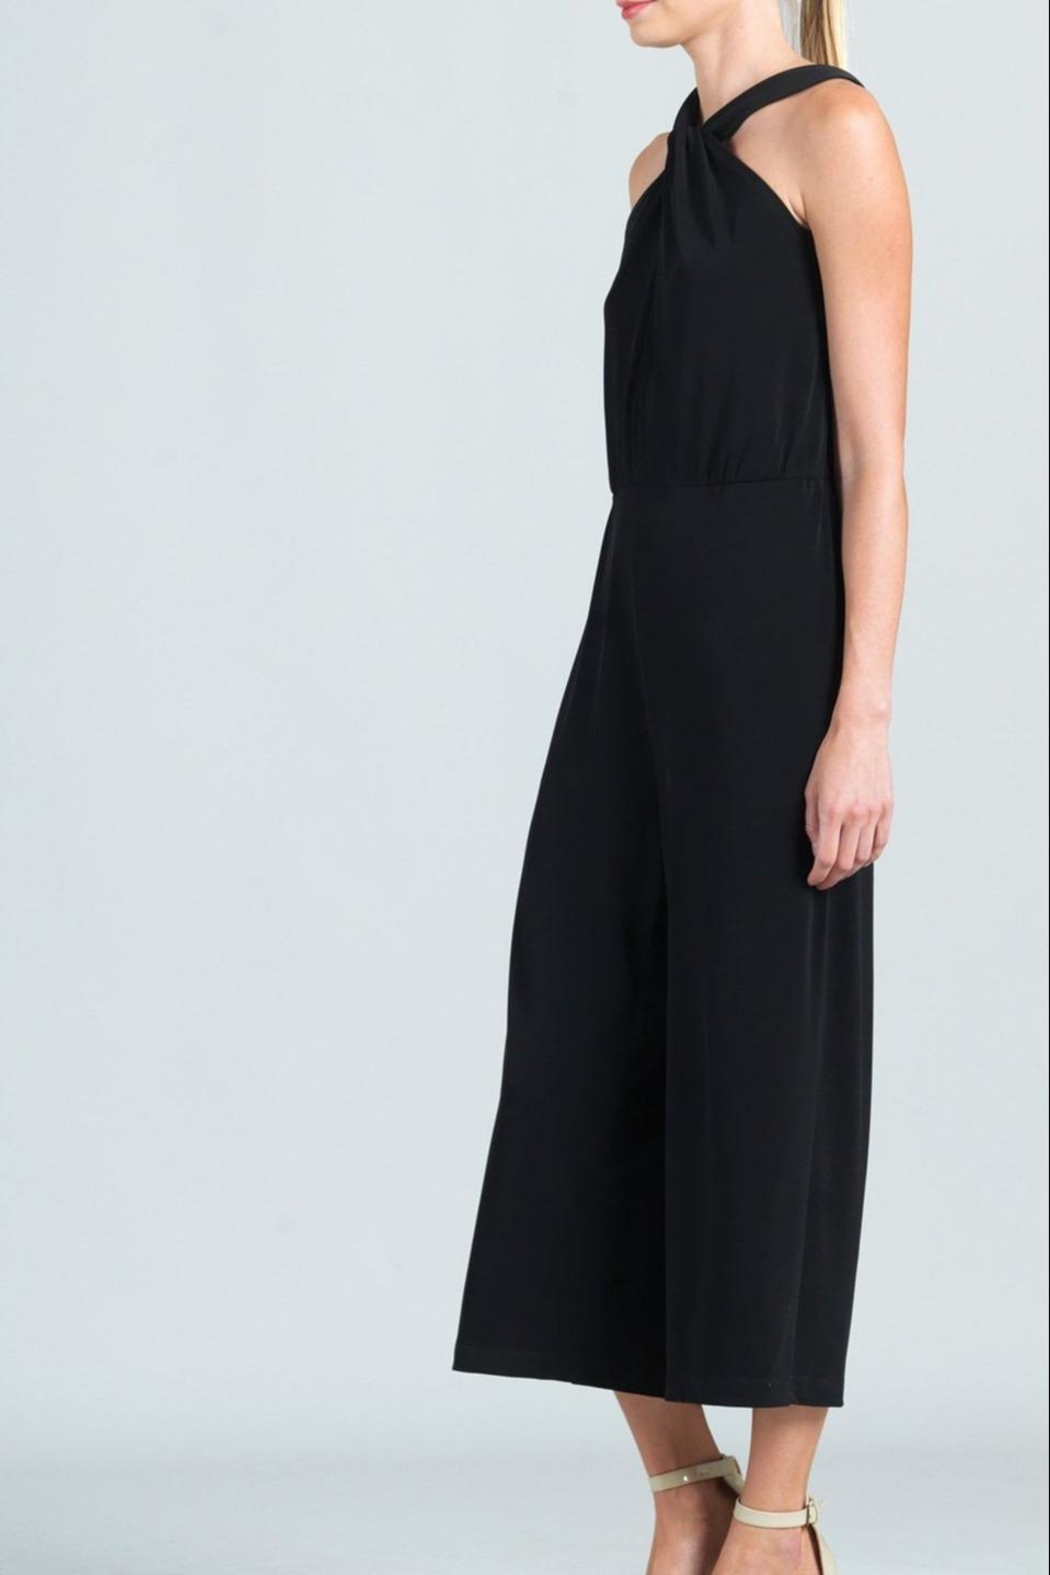 Clara Sunwoo Cross-Front Cropped-Halter Jumpsuit - Side Cropped Image